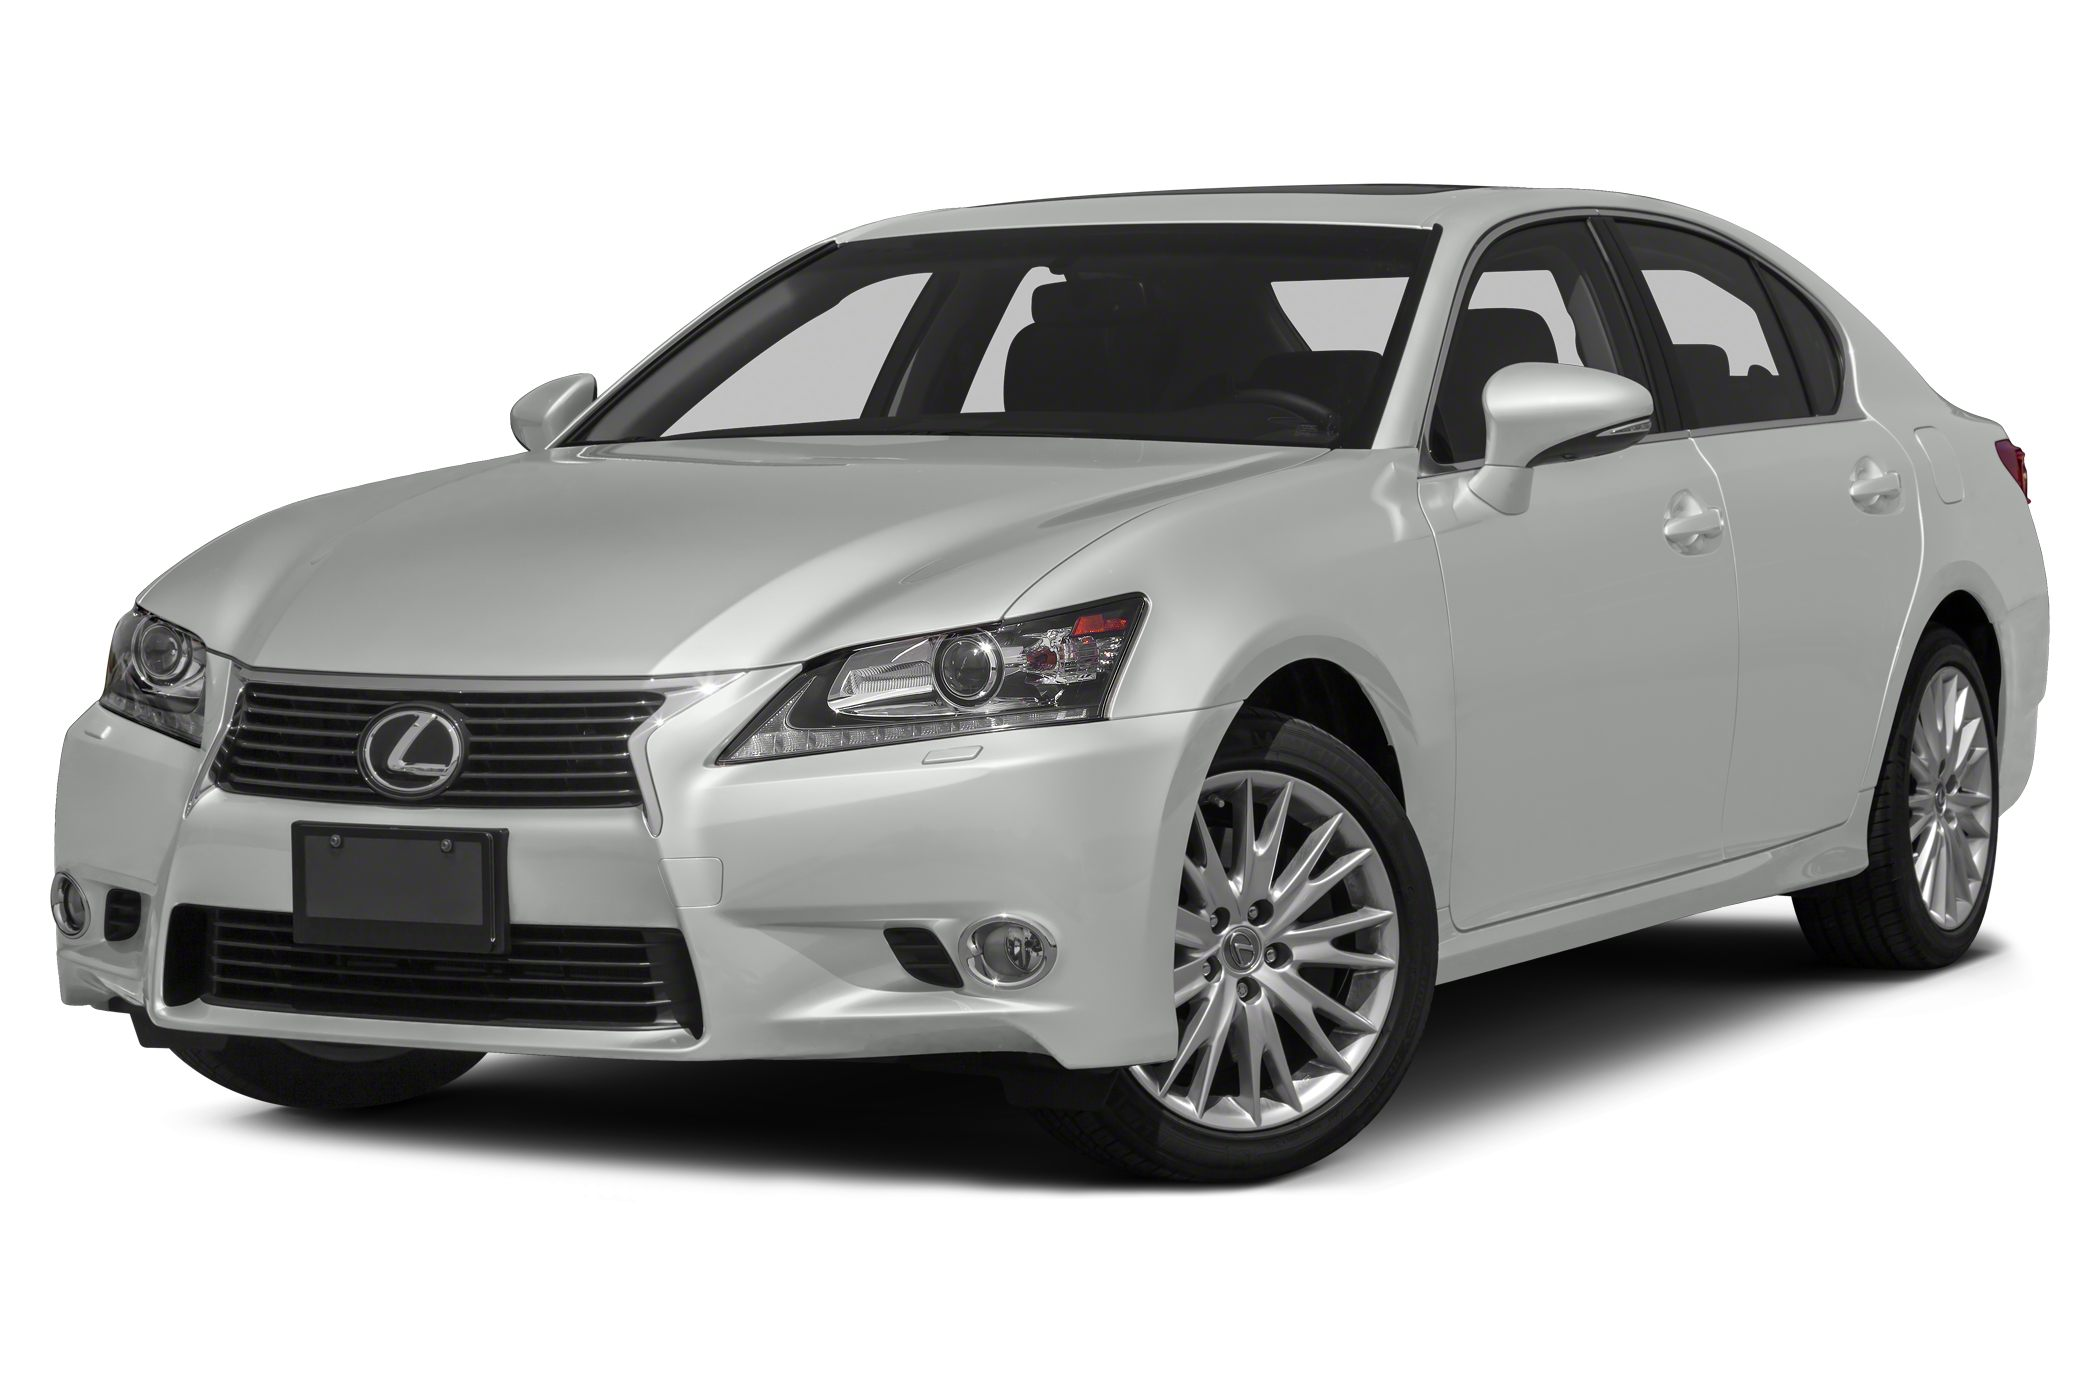 2013 Lexus GS 350 Base Proud to be named 2016 DEALER of the YEAR in the used vehicle category for